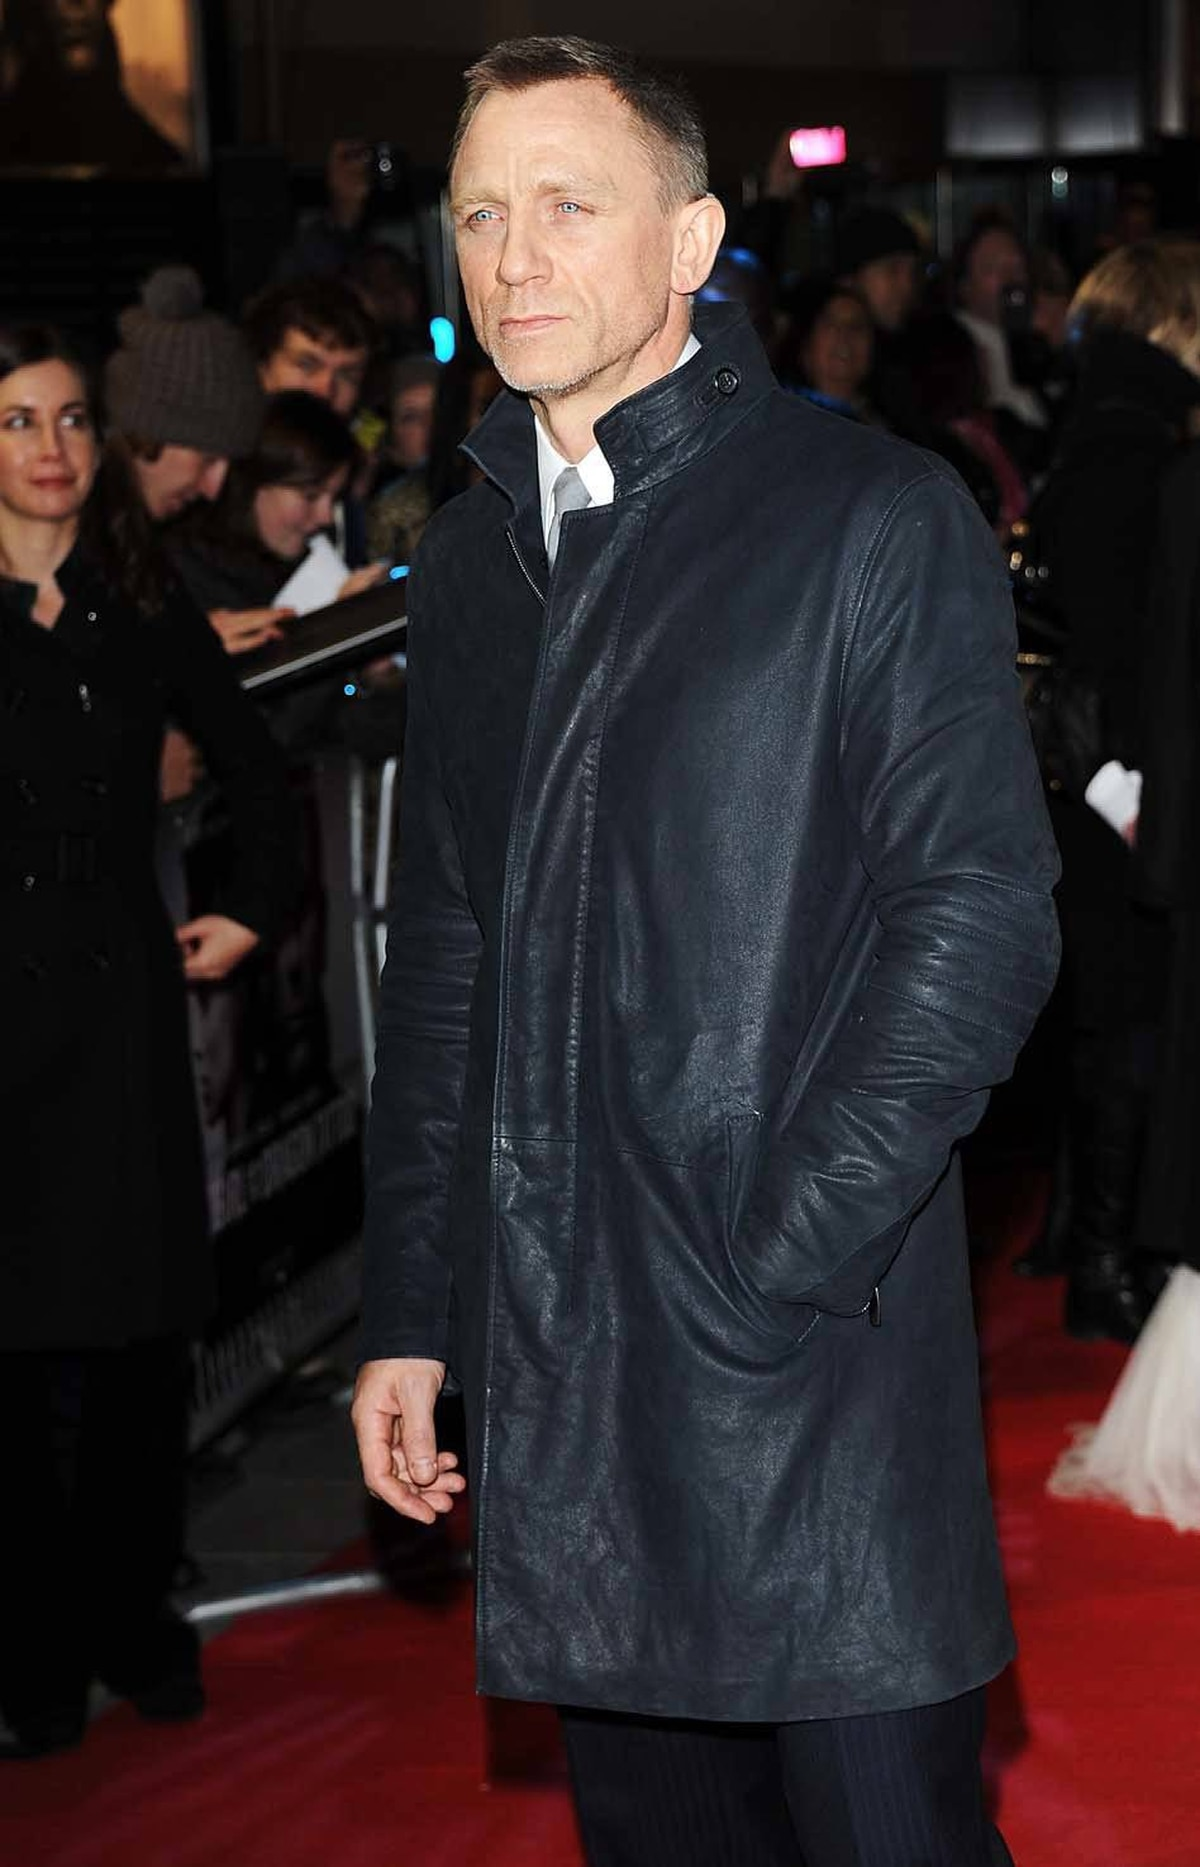 """Actor Daniel Craig hired himself as his own bodyguard at the world premiere of """"The Girl with the Dragon Tattoo"""" in London on Monday"""